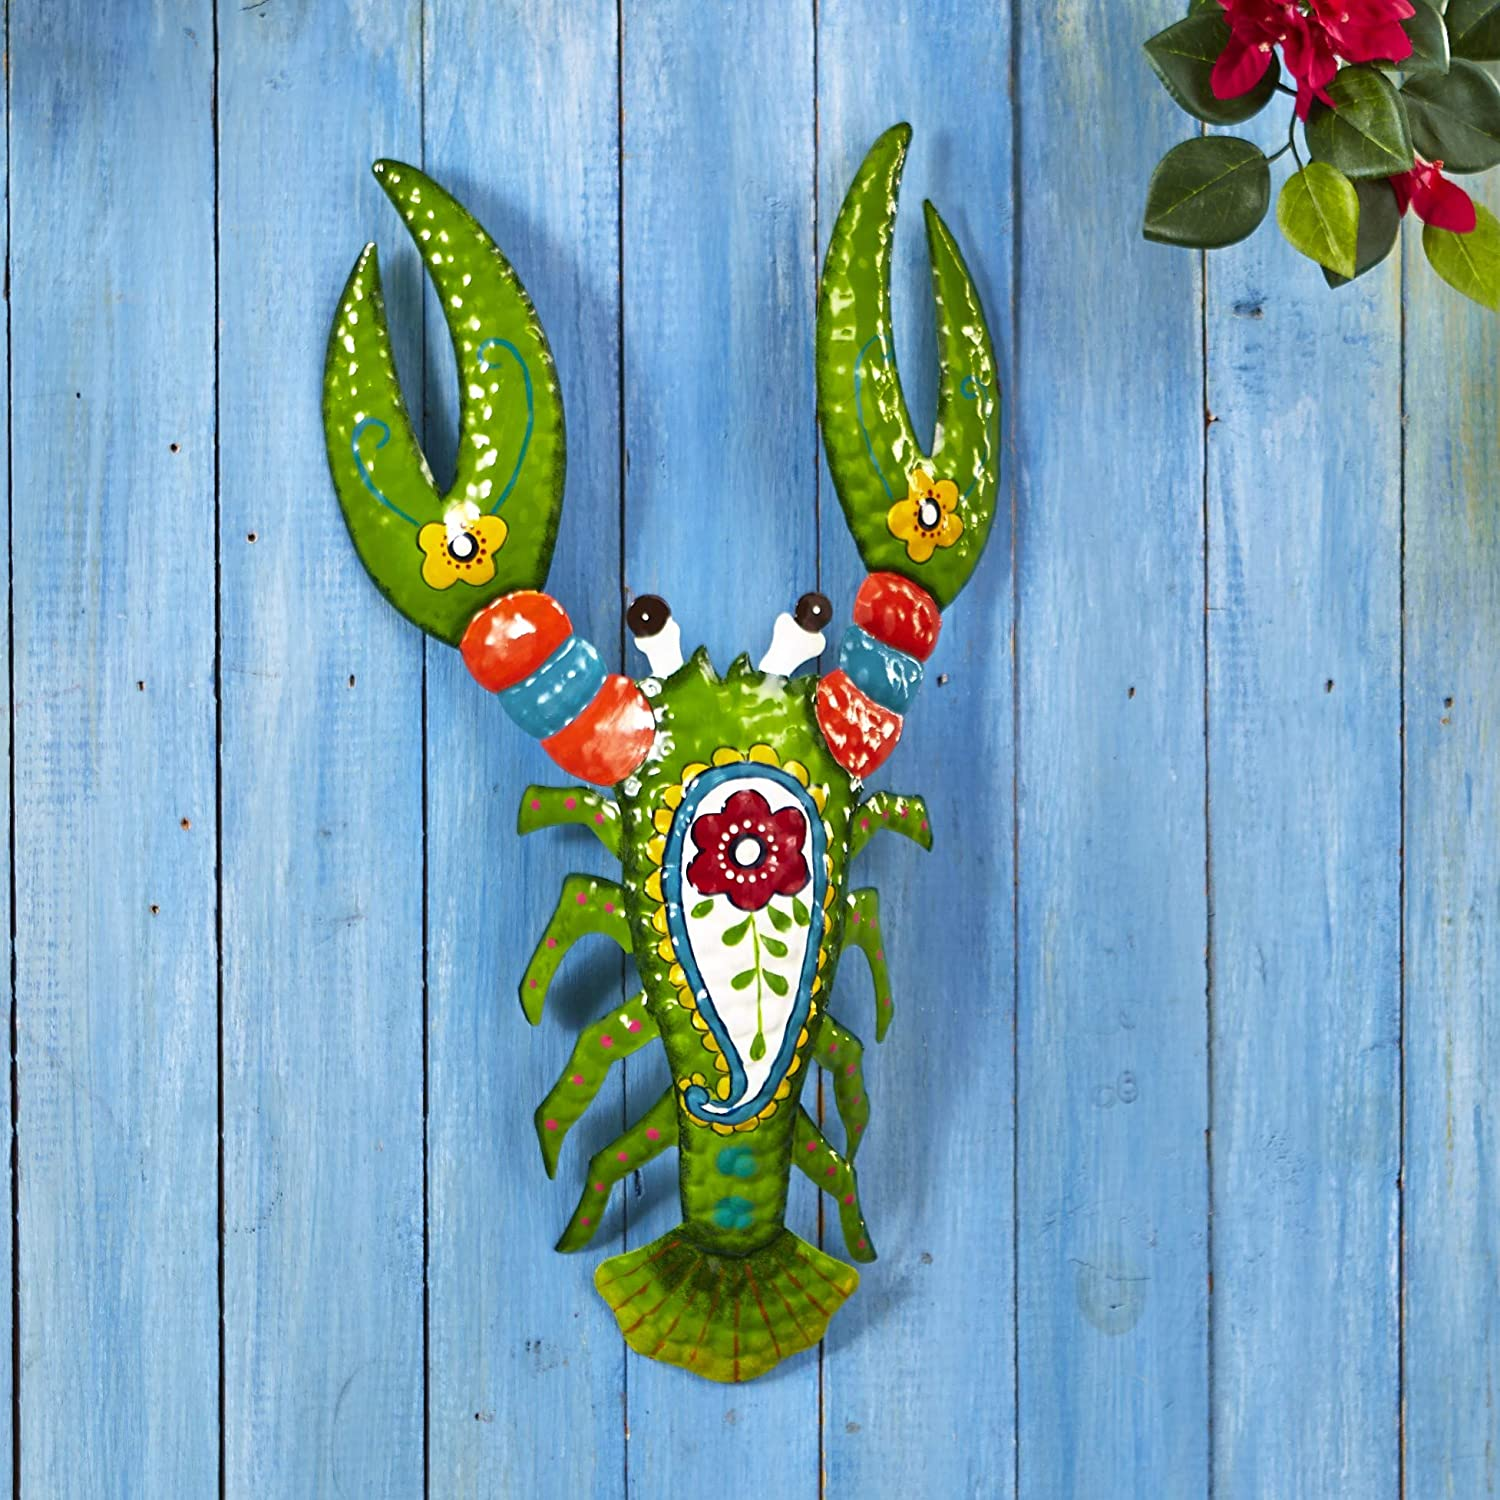 Decorative Metal Lobster Sculpture - Tropical Themed Home Accent